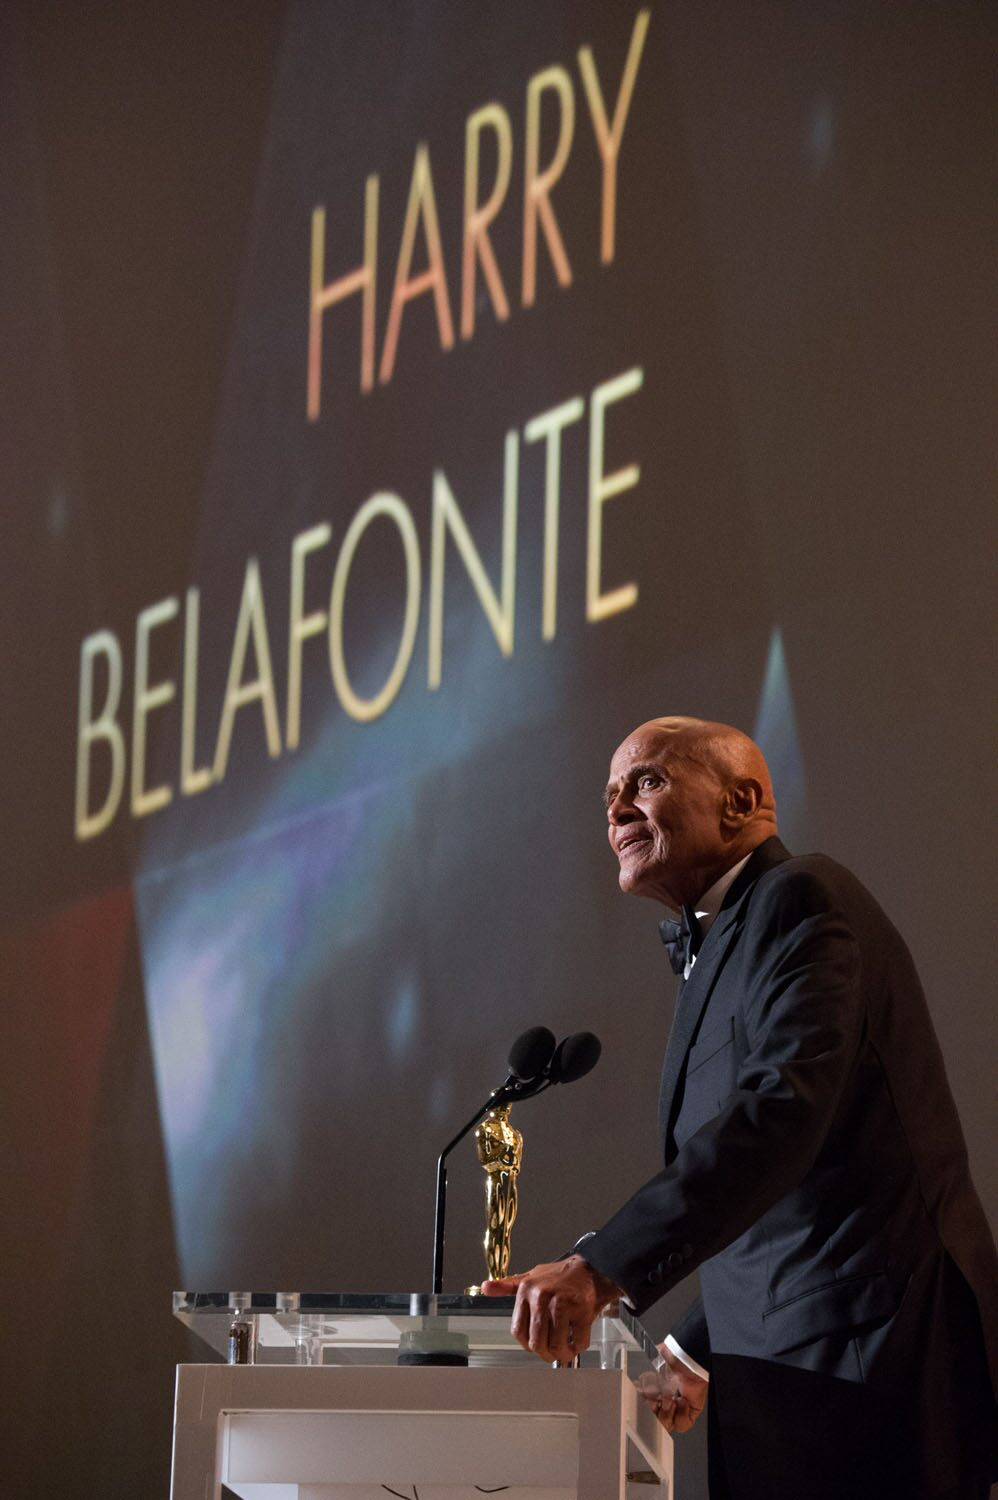 Jean Hersholt Humanitarian Award to Harry Belafonte during the 2014 Governors Awards